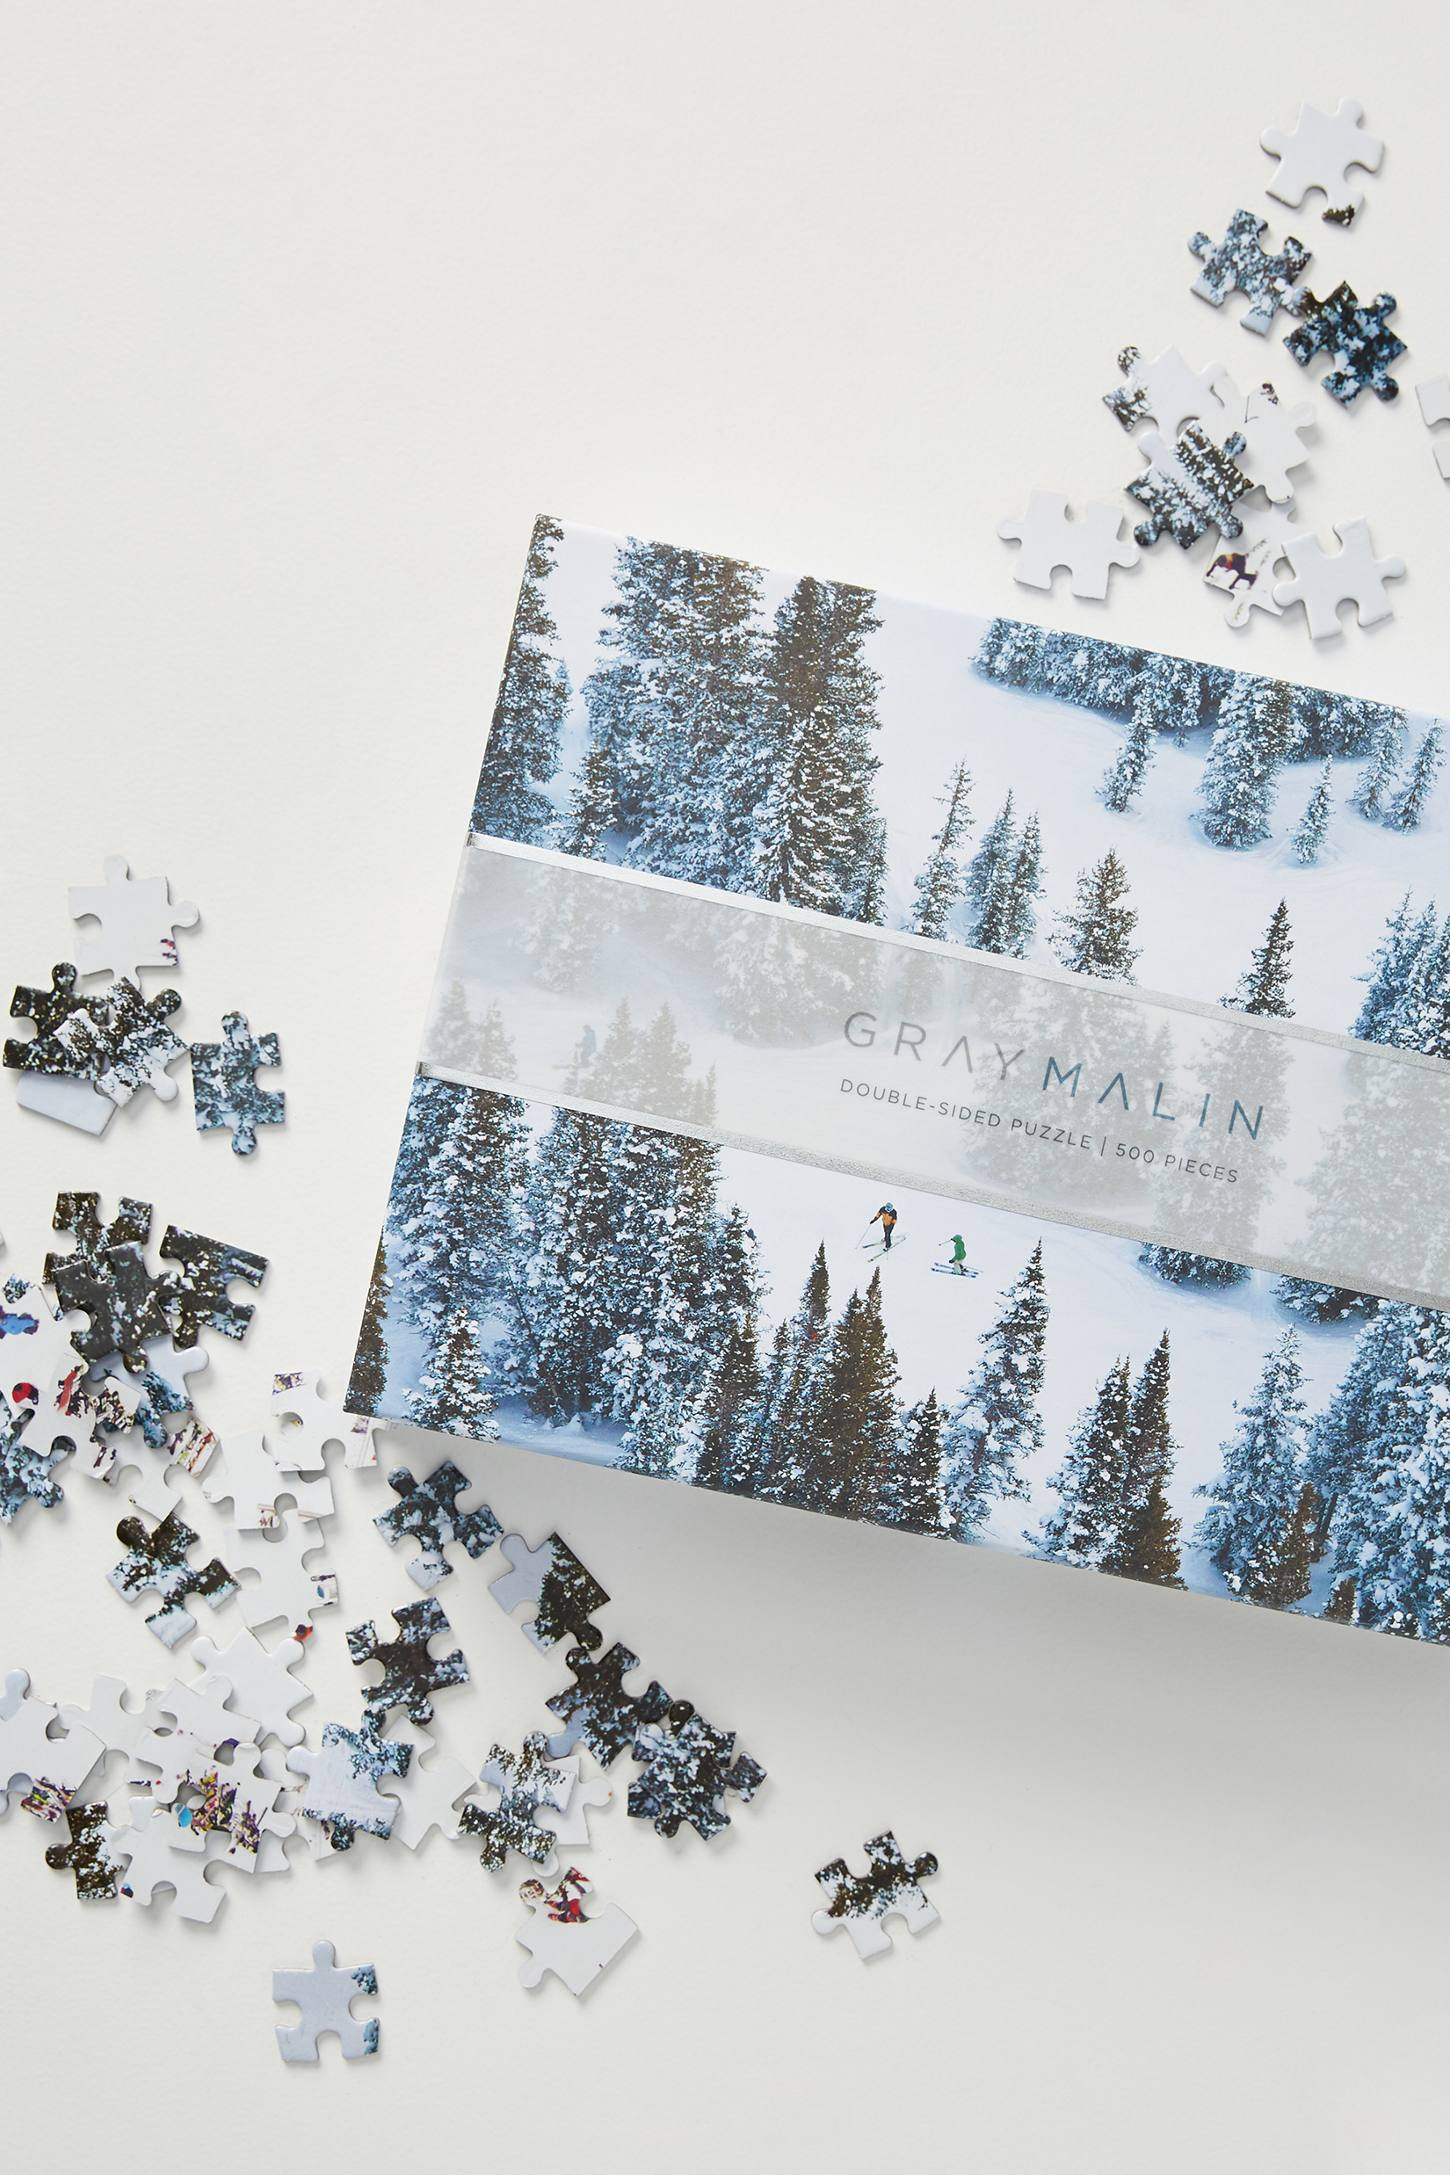 Double Sided Snow Puzzle